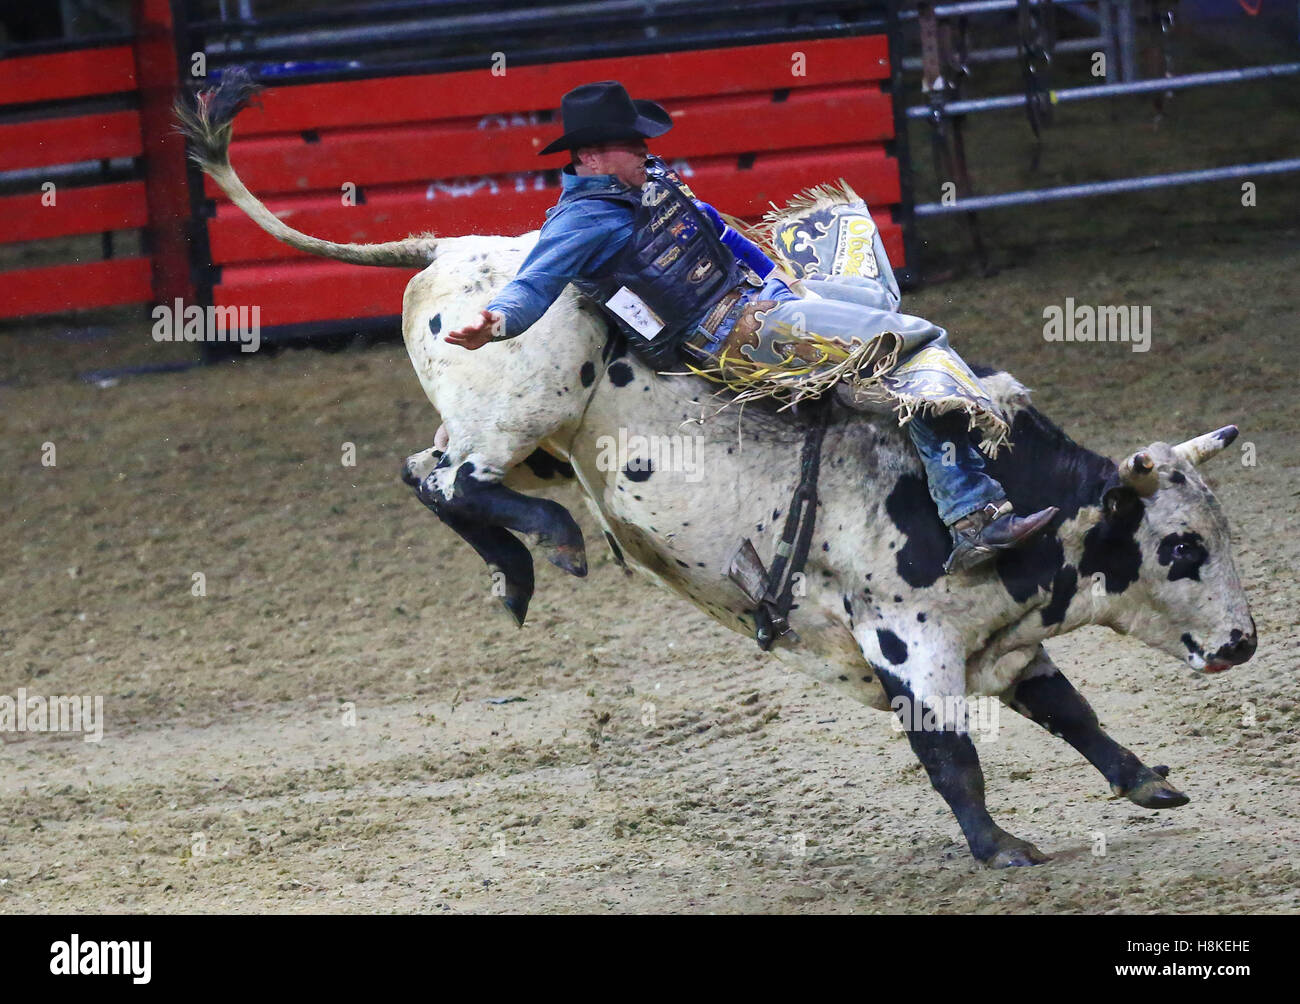 Toronto, Canada. 13th Nov, 2016. Cowboy Adam Hinkley of Australia competes during the Rodeo section of the 2016 - Stock Image